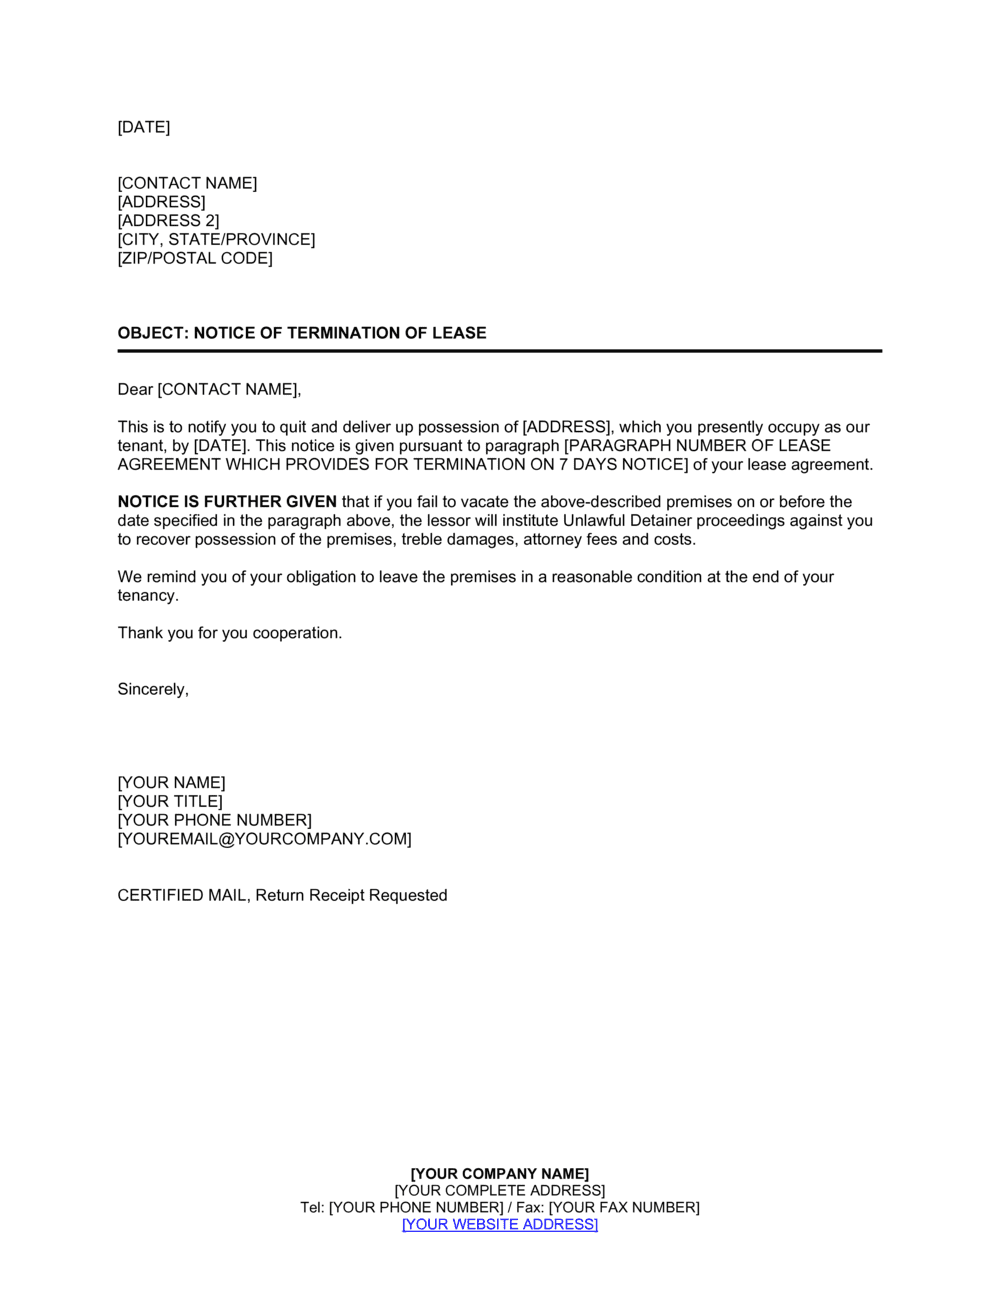 Sample Letter Of Termination Of Tenancy Agreement By Landlord from templates.business-in-a-box.com